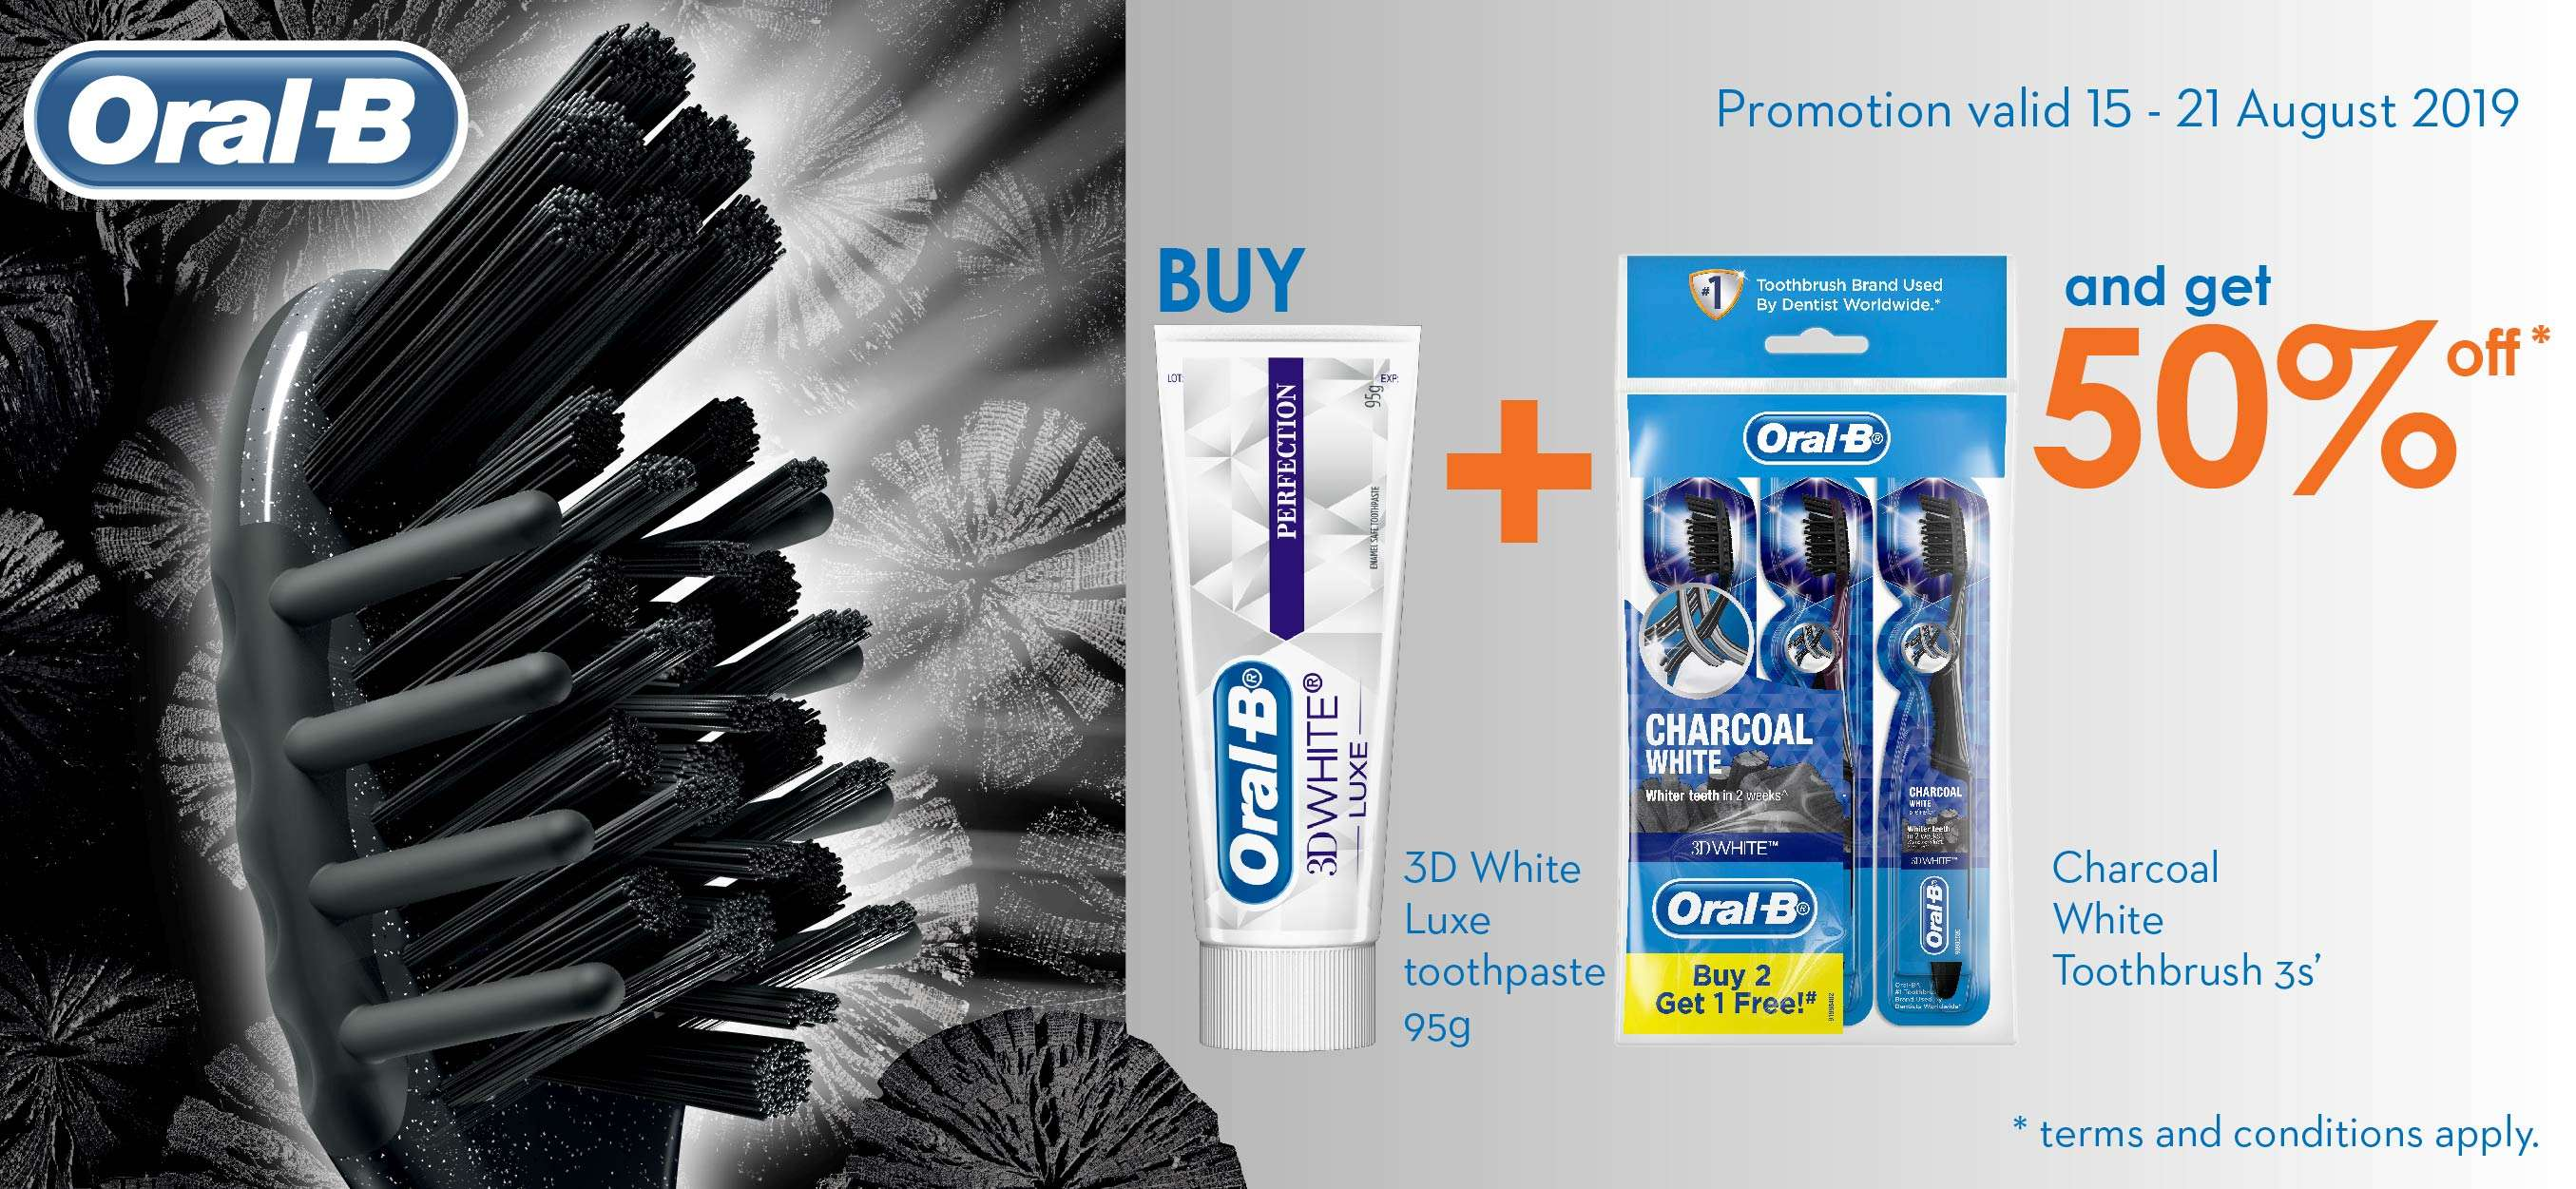 Oral-B Special Promotion